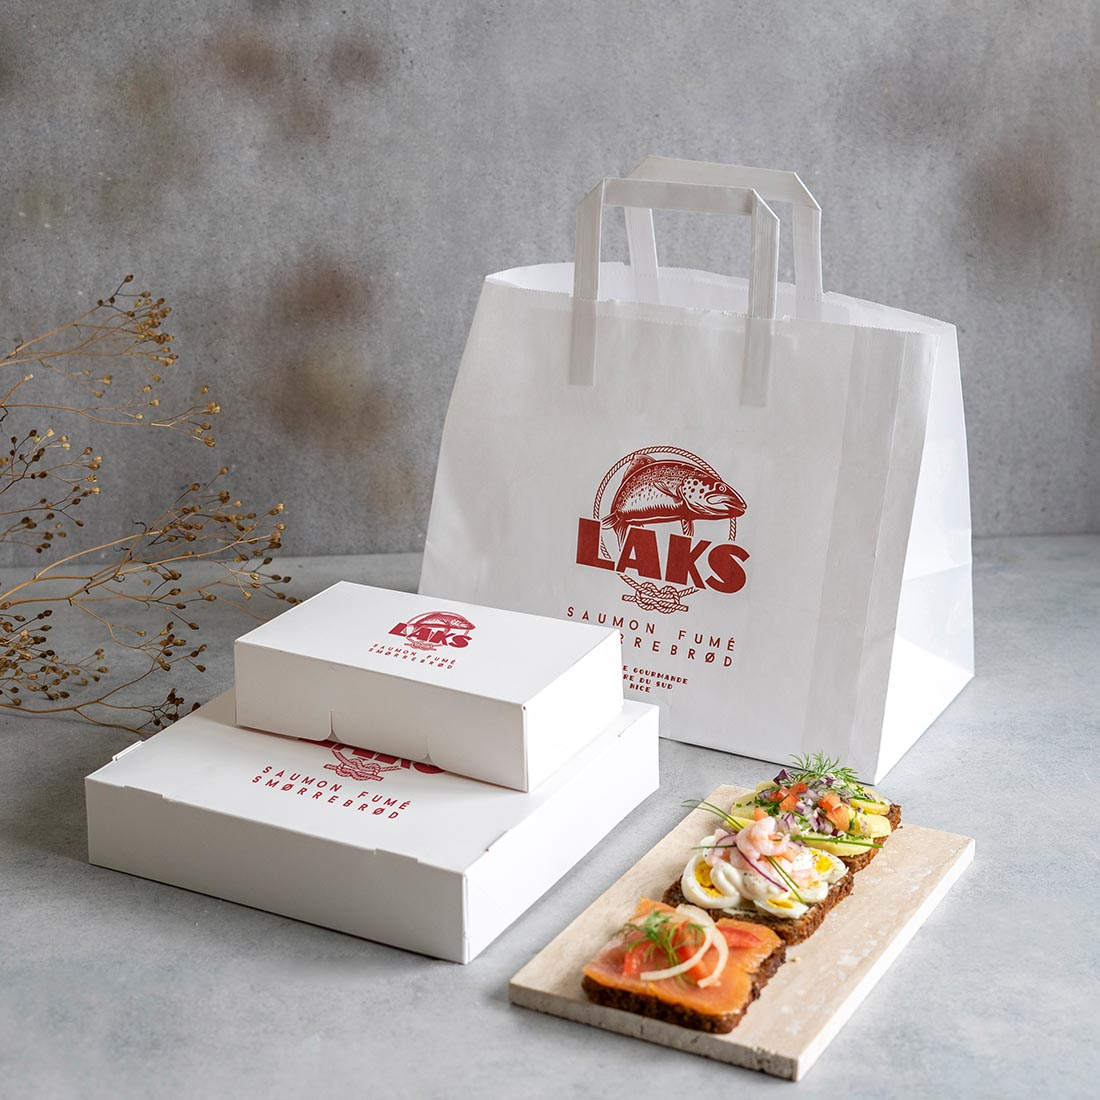 A complete set of paper packaging creates a coherent image of the Laks brand.